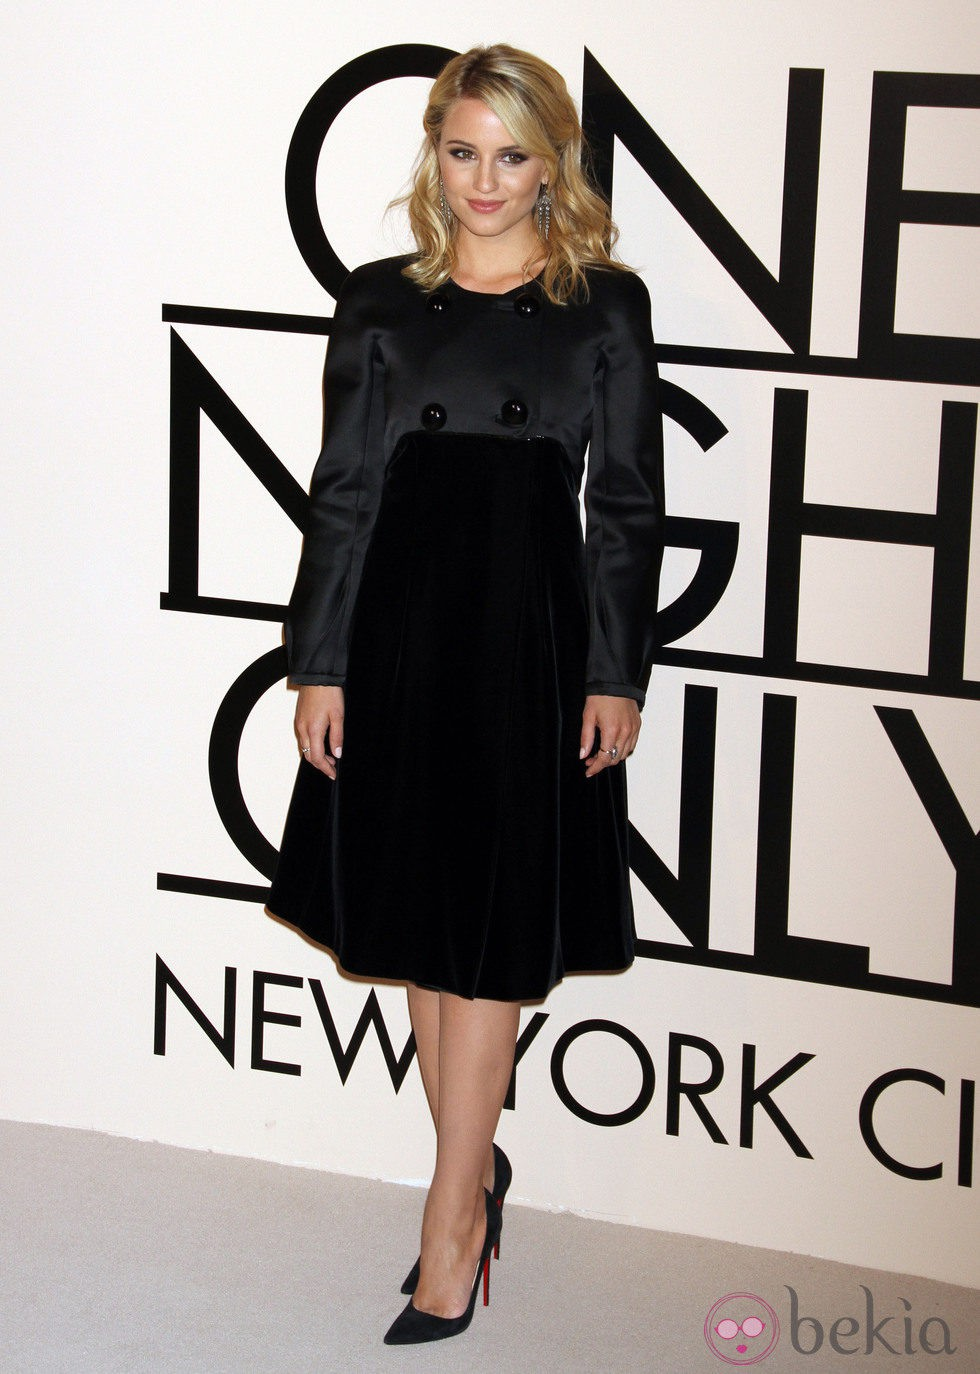 Dianna Agron en la fiesta de Giorgio Armani 'One NIght Only' en Nueva York